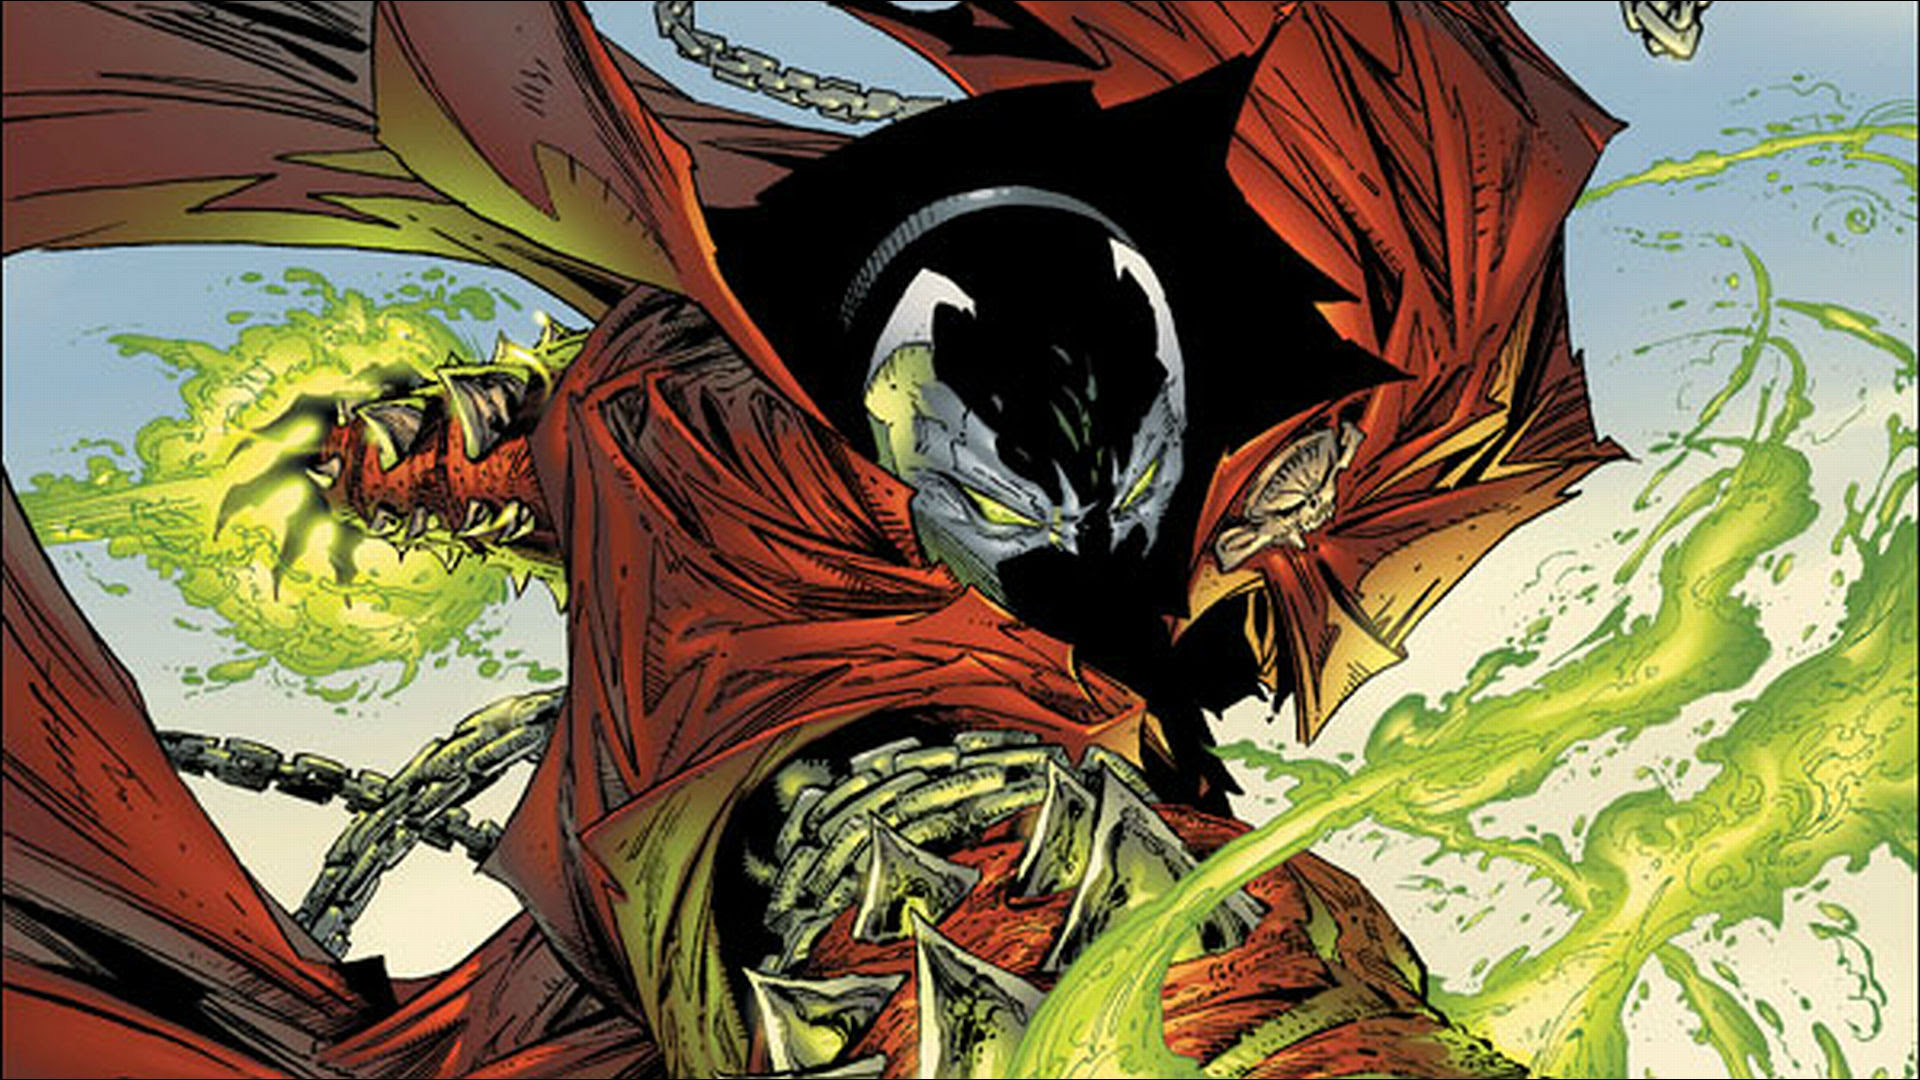 Todd McFarlane to direct new R-rated, lower budget Spawn movie screenshot